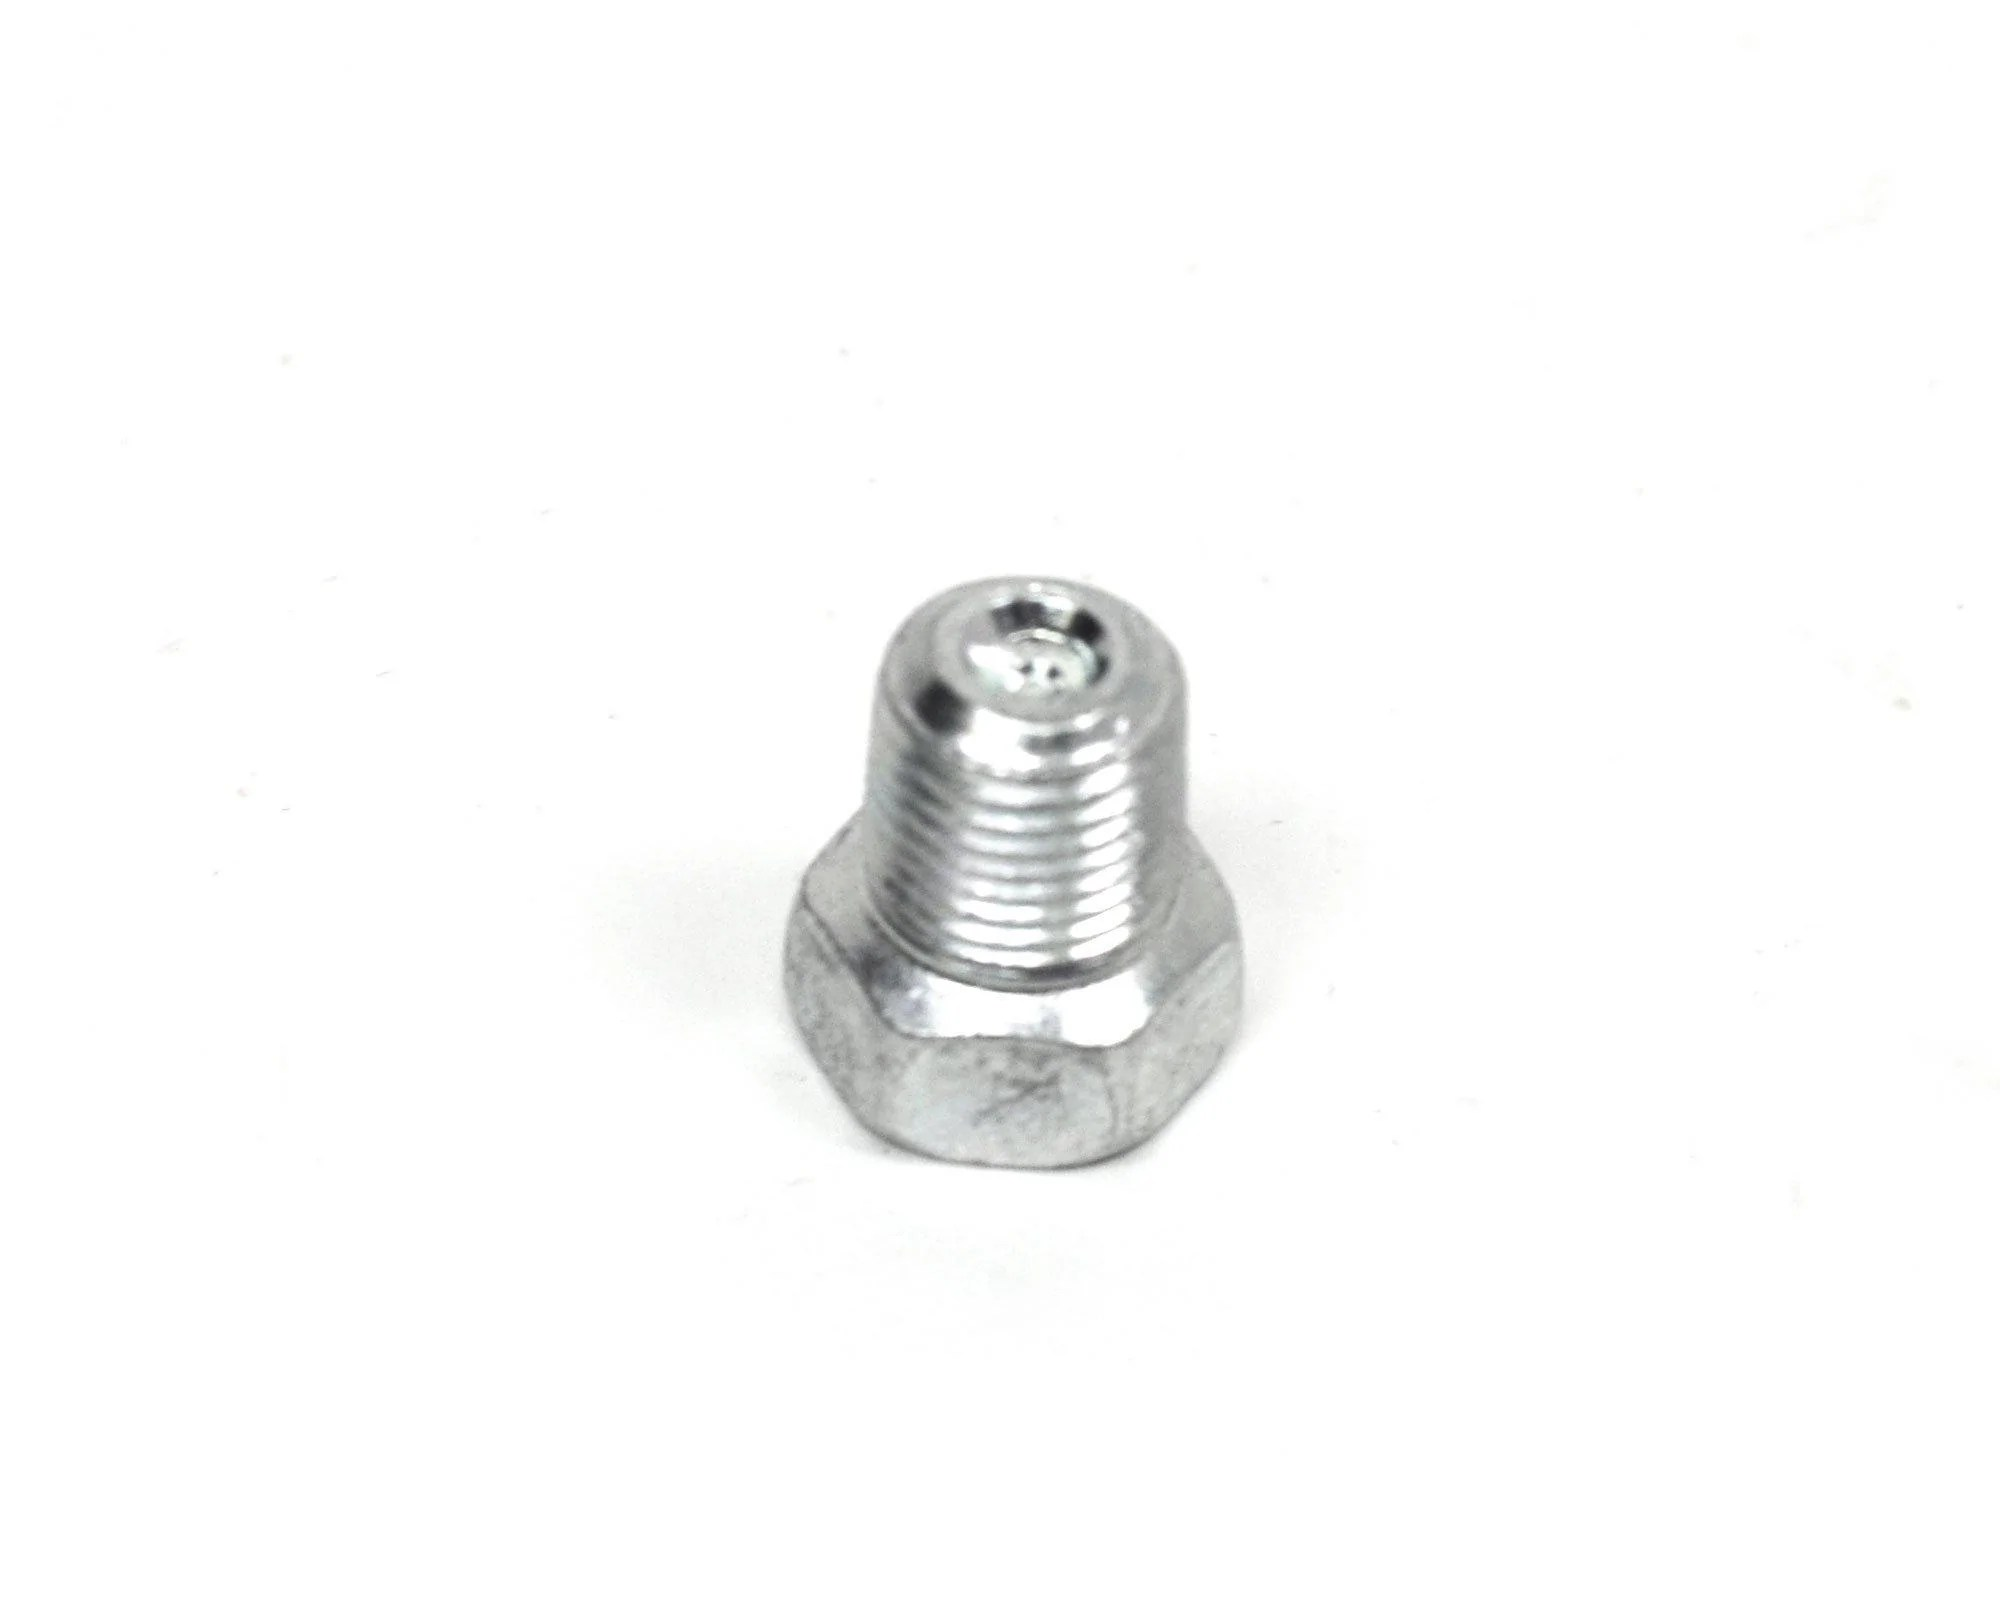 hight resolution of  engine coolant drain plug 1966 85 classic spider auto ricambi